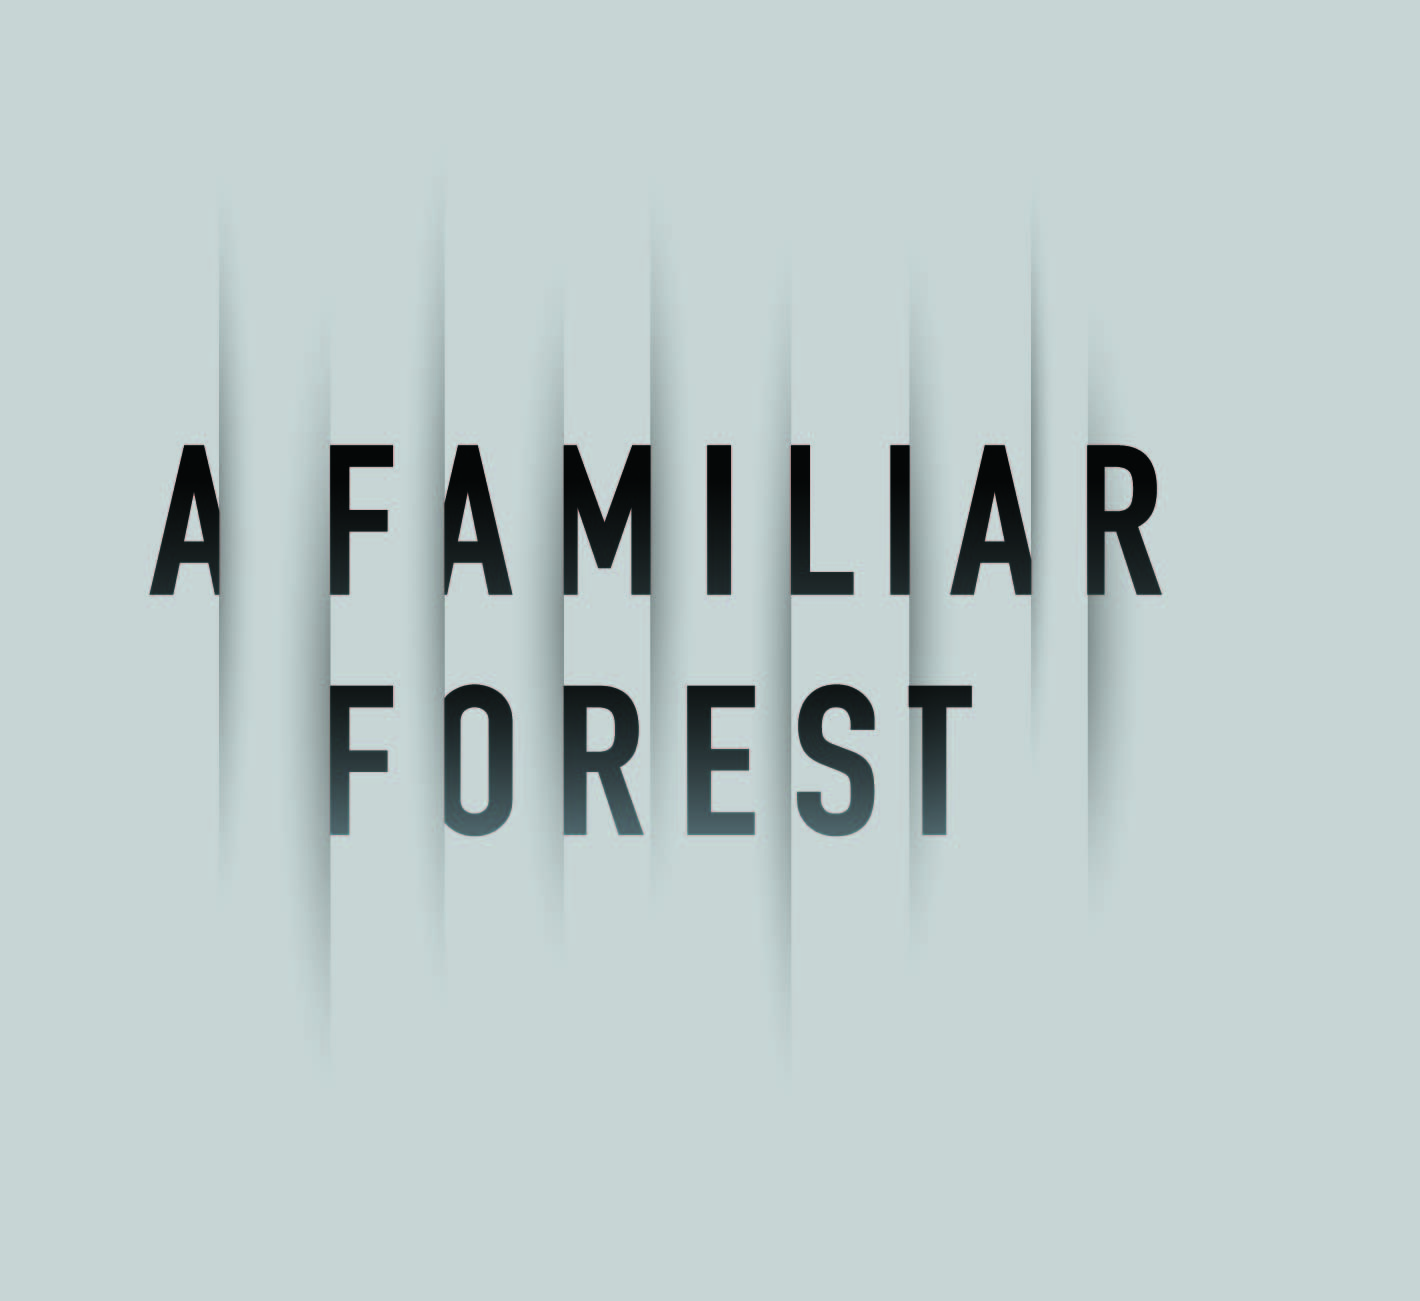 AFamiliarForest